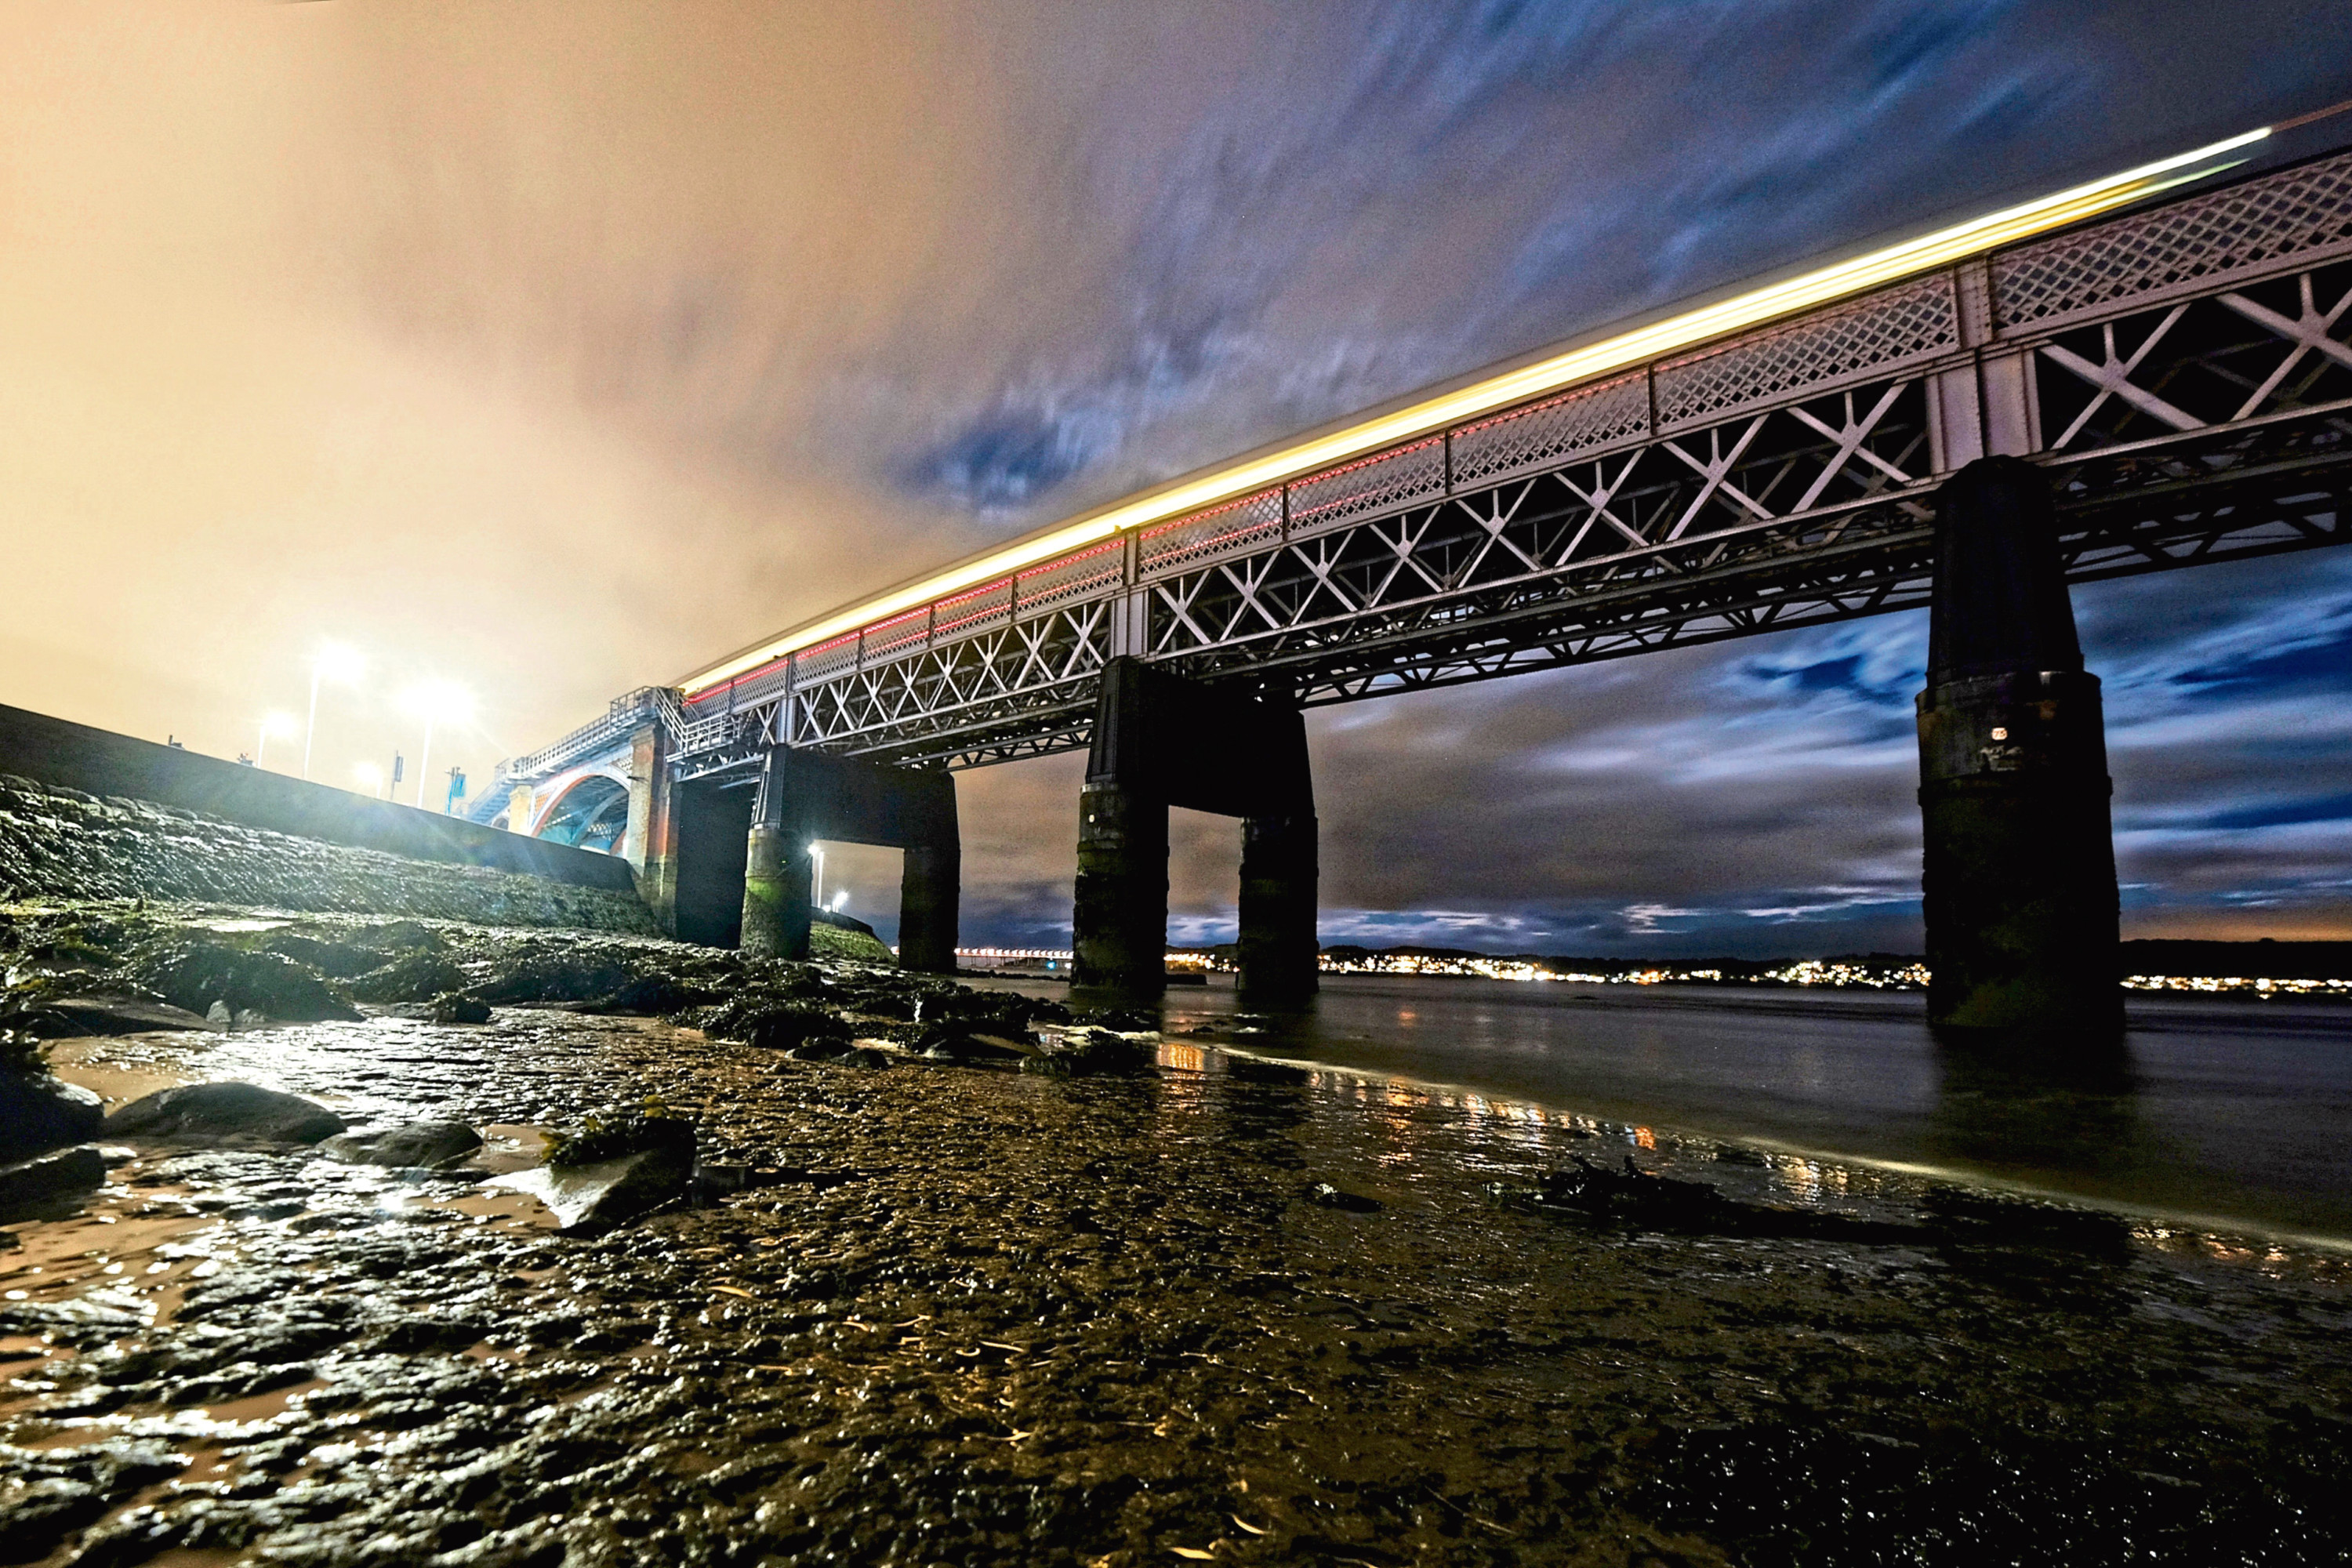 Jakub's mesmerising shot of the Tay Bridge